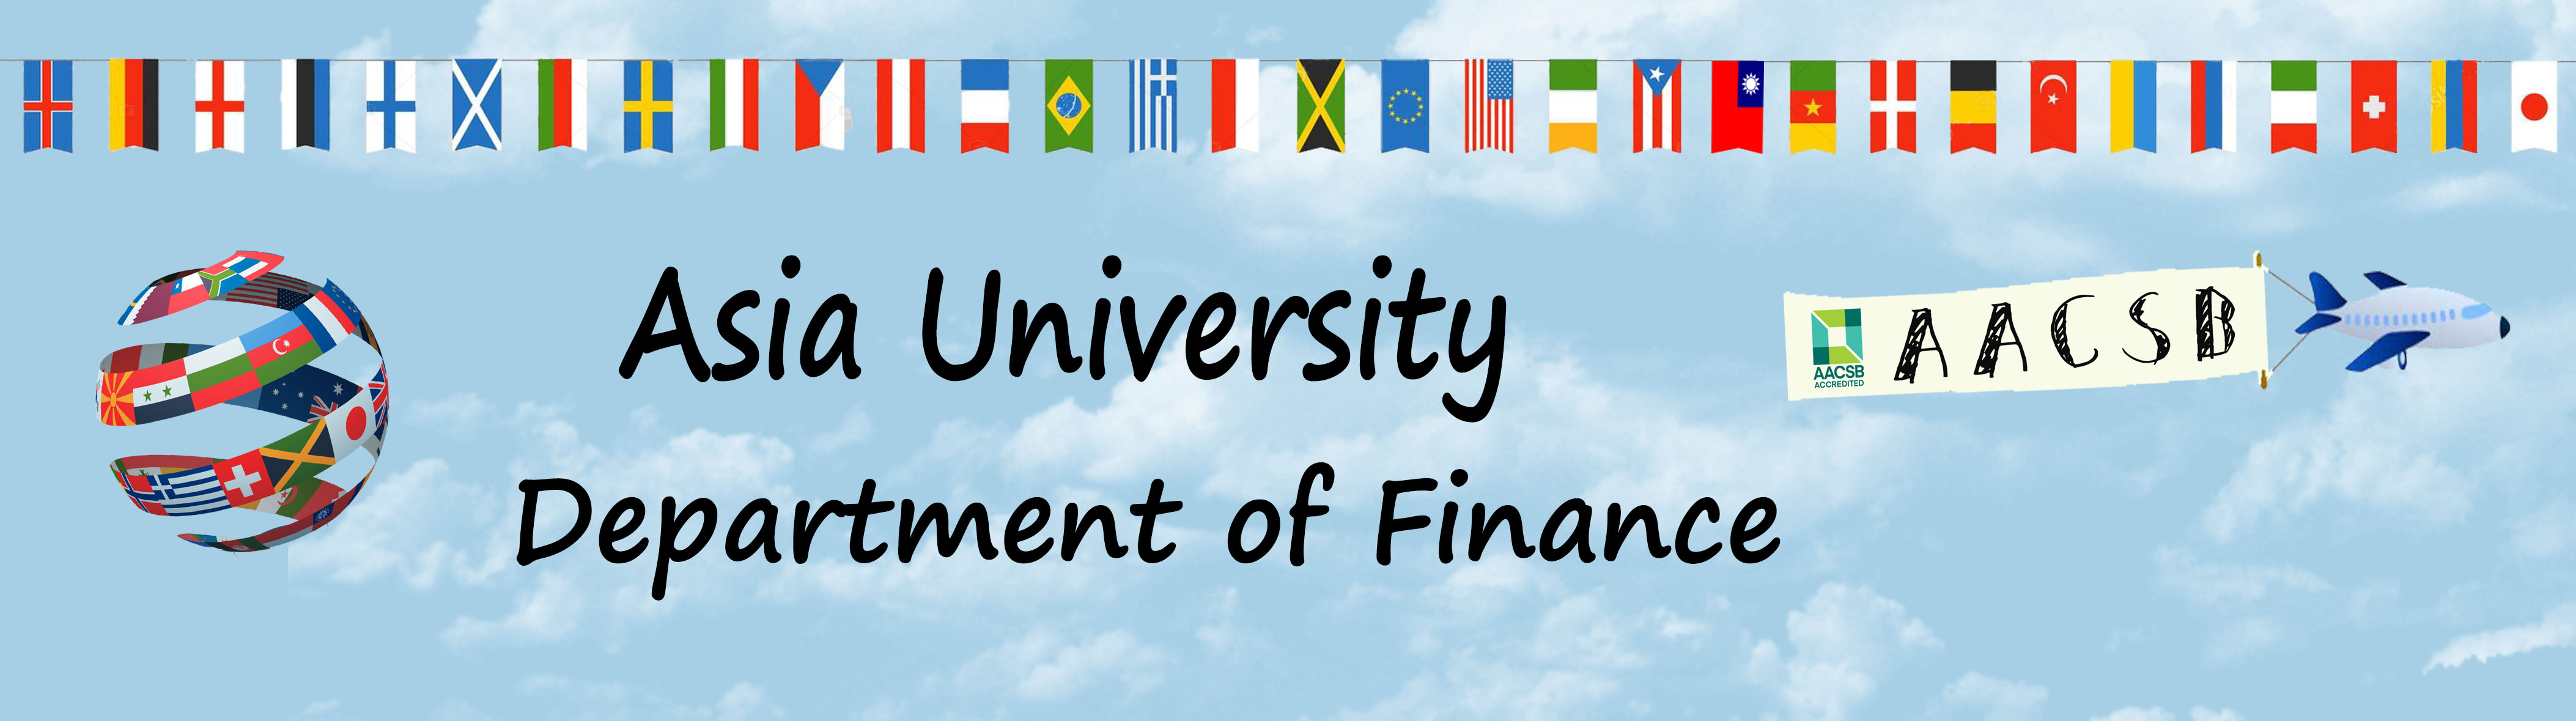 Asia University Department Of Finance